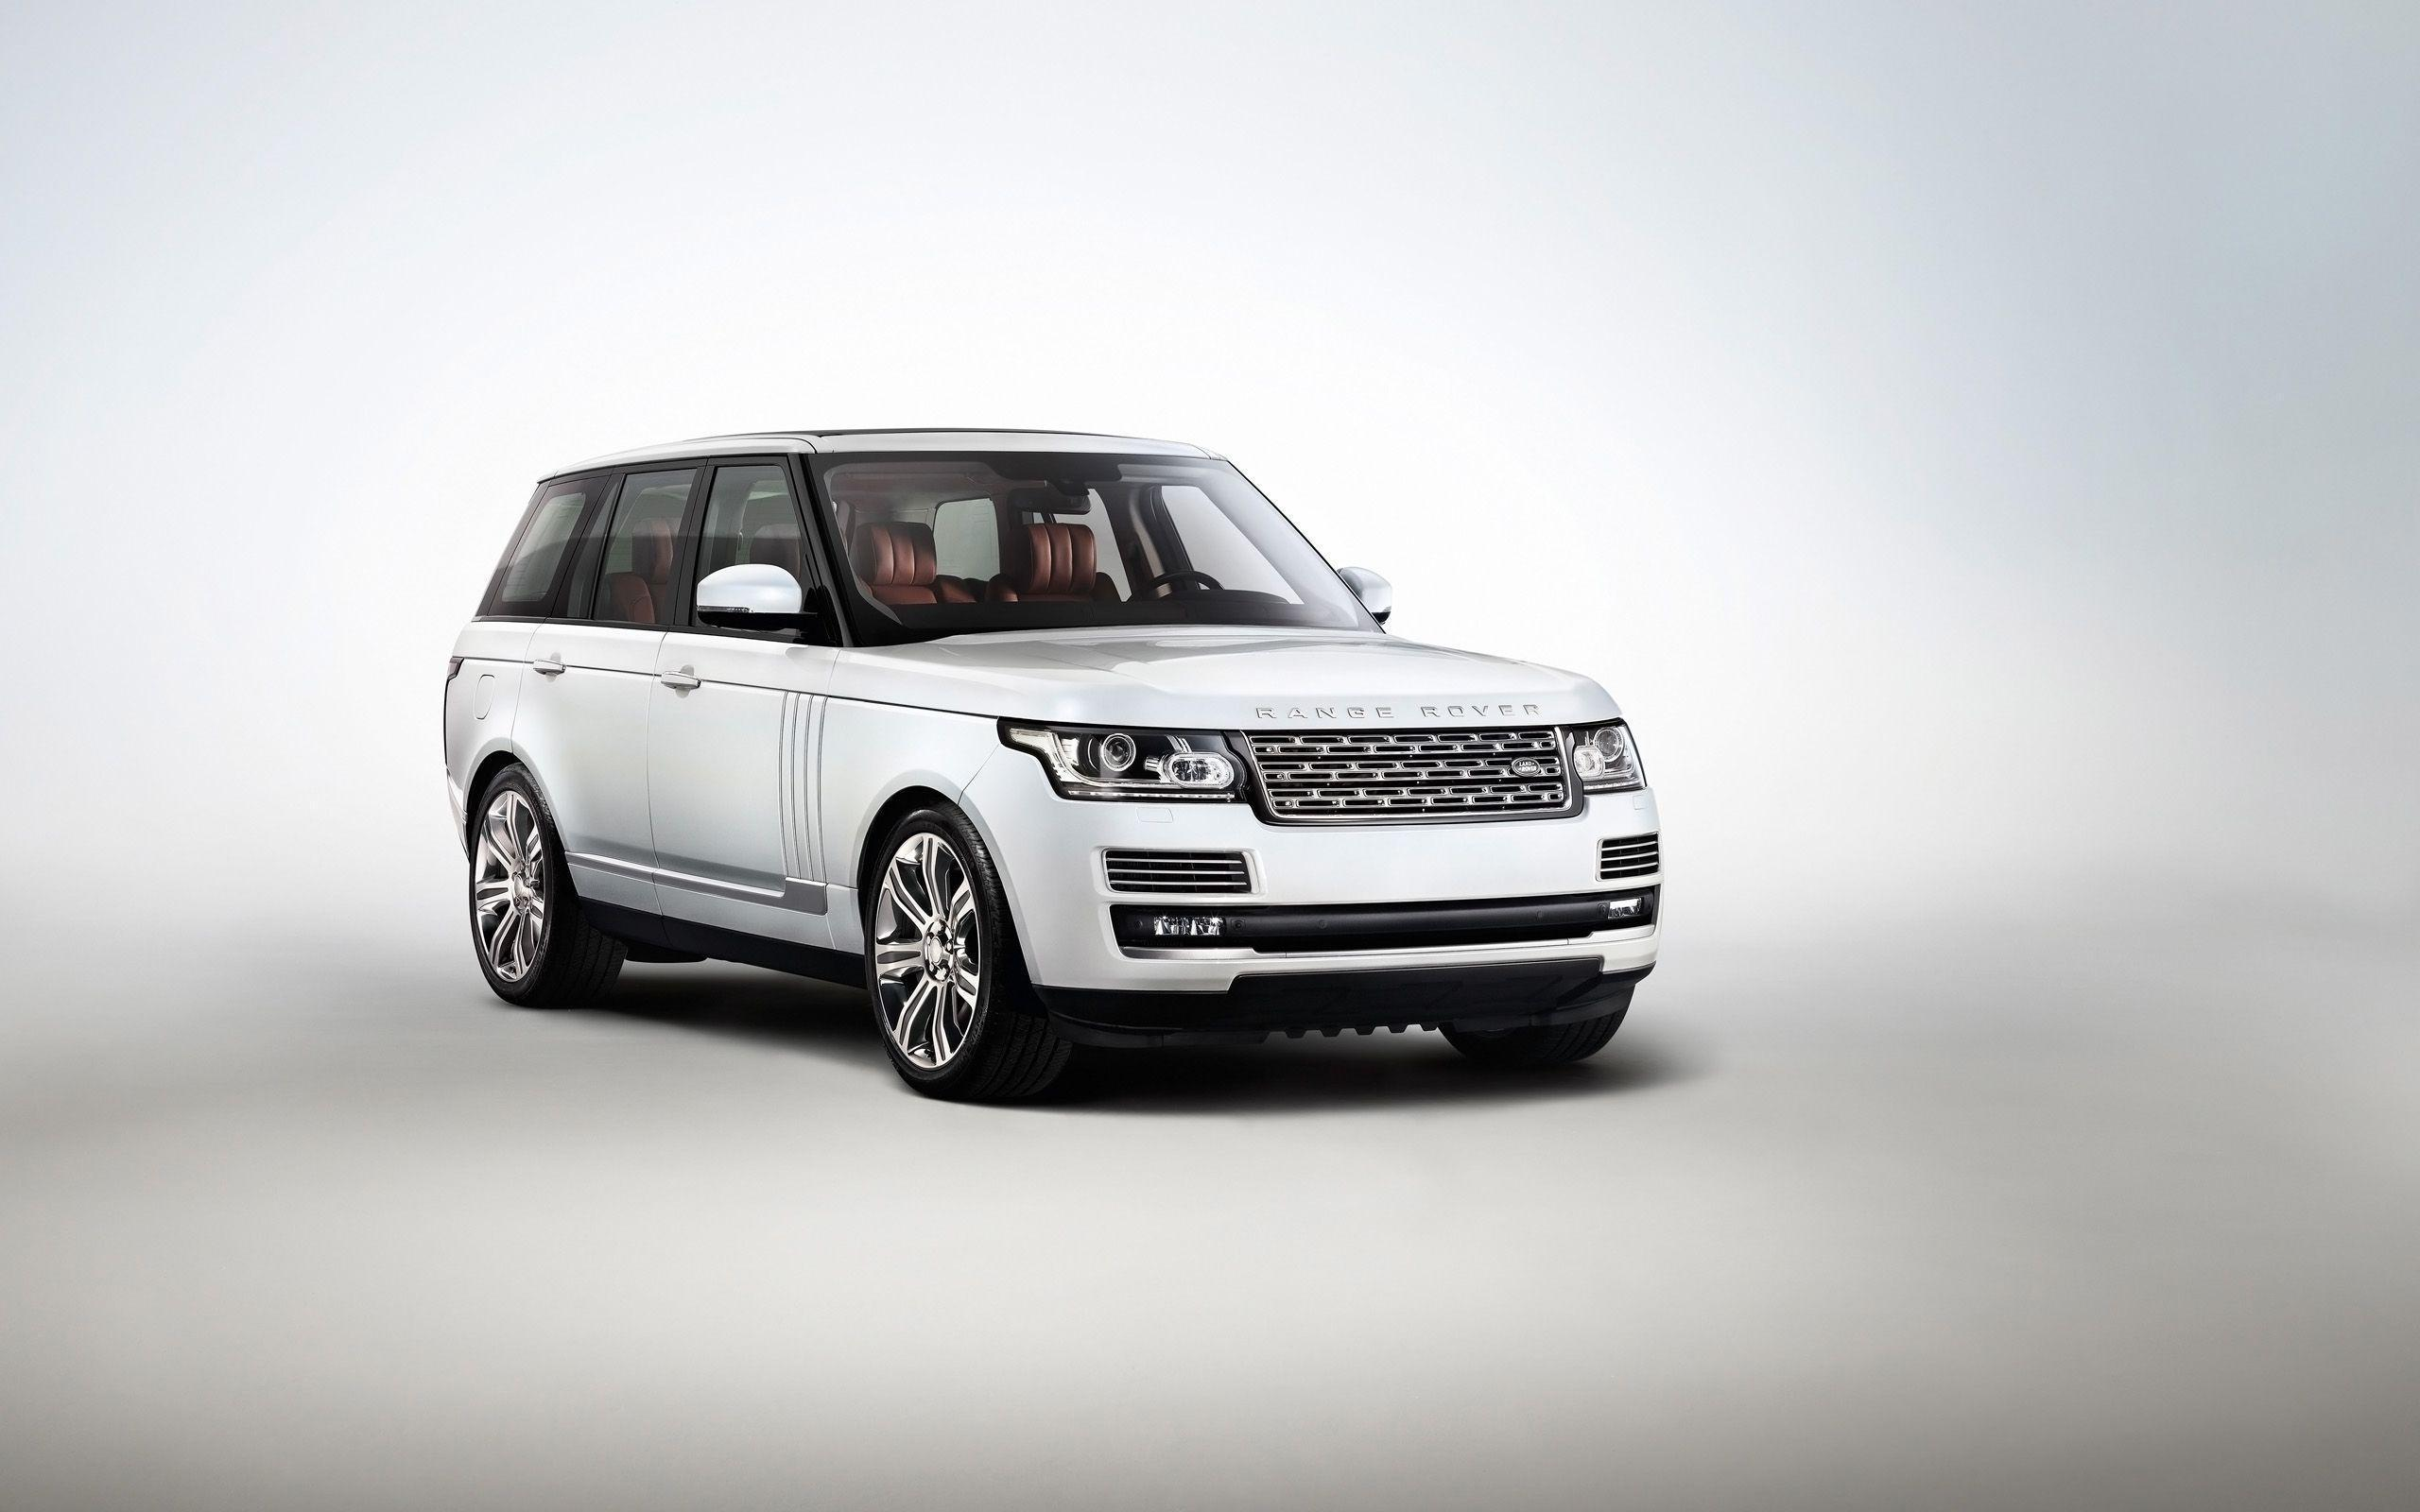 2014 Land Rover Range Rover Autobiography Wallpapers